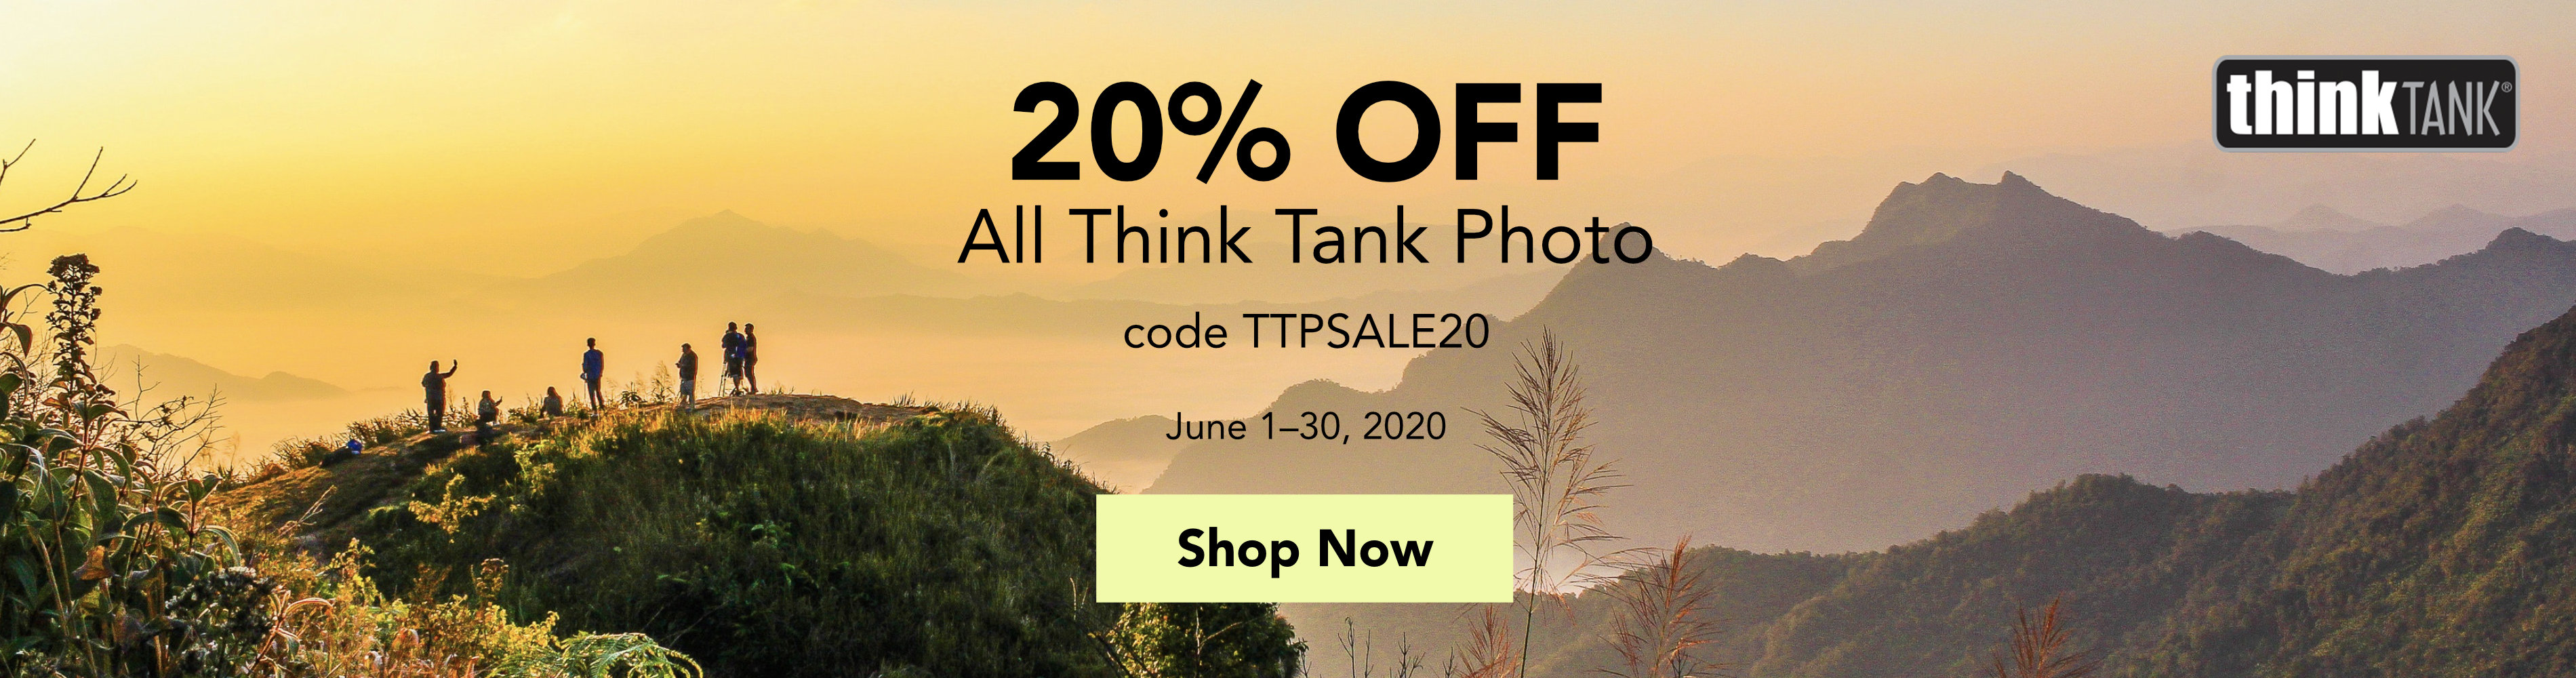 Save 20% on all Think Tank Photo Products through June 30